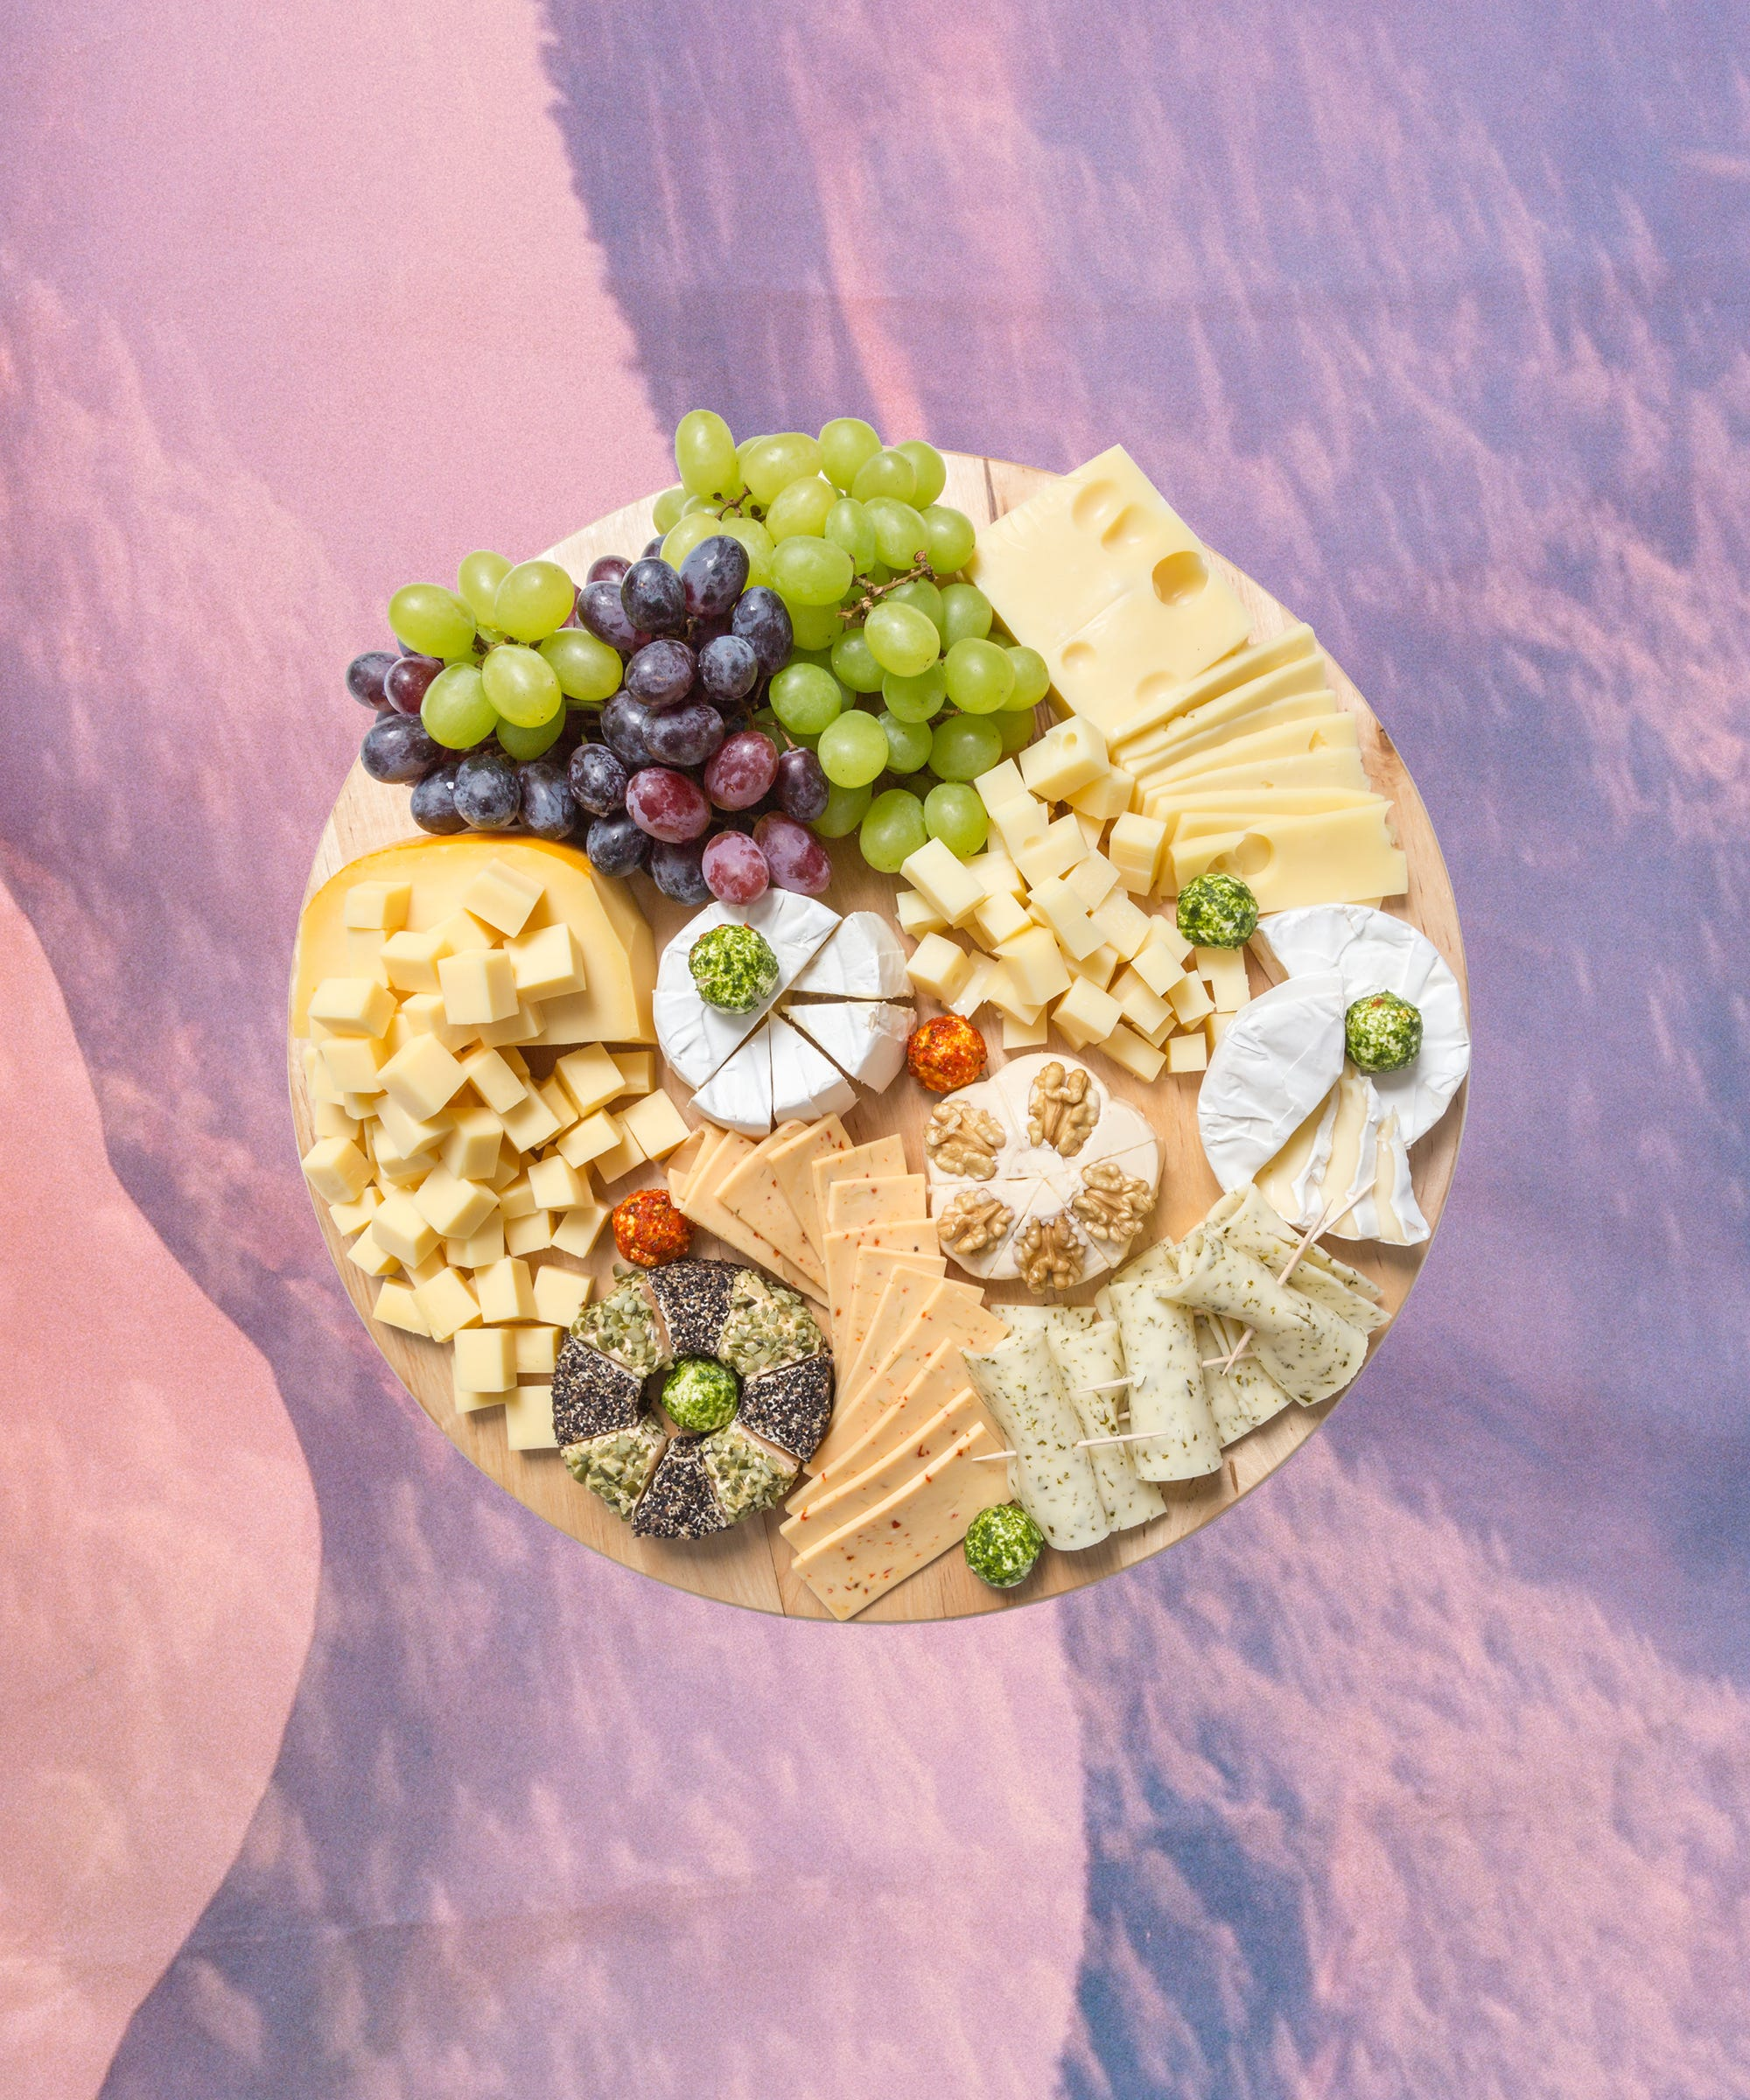 Cheese Board Influencer Is A Real Job Thanks To A Growing Instagram Trend